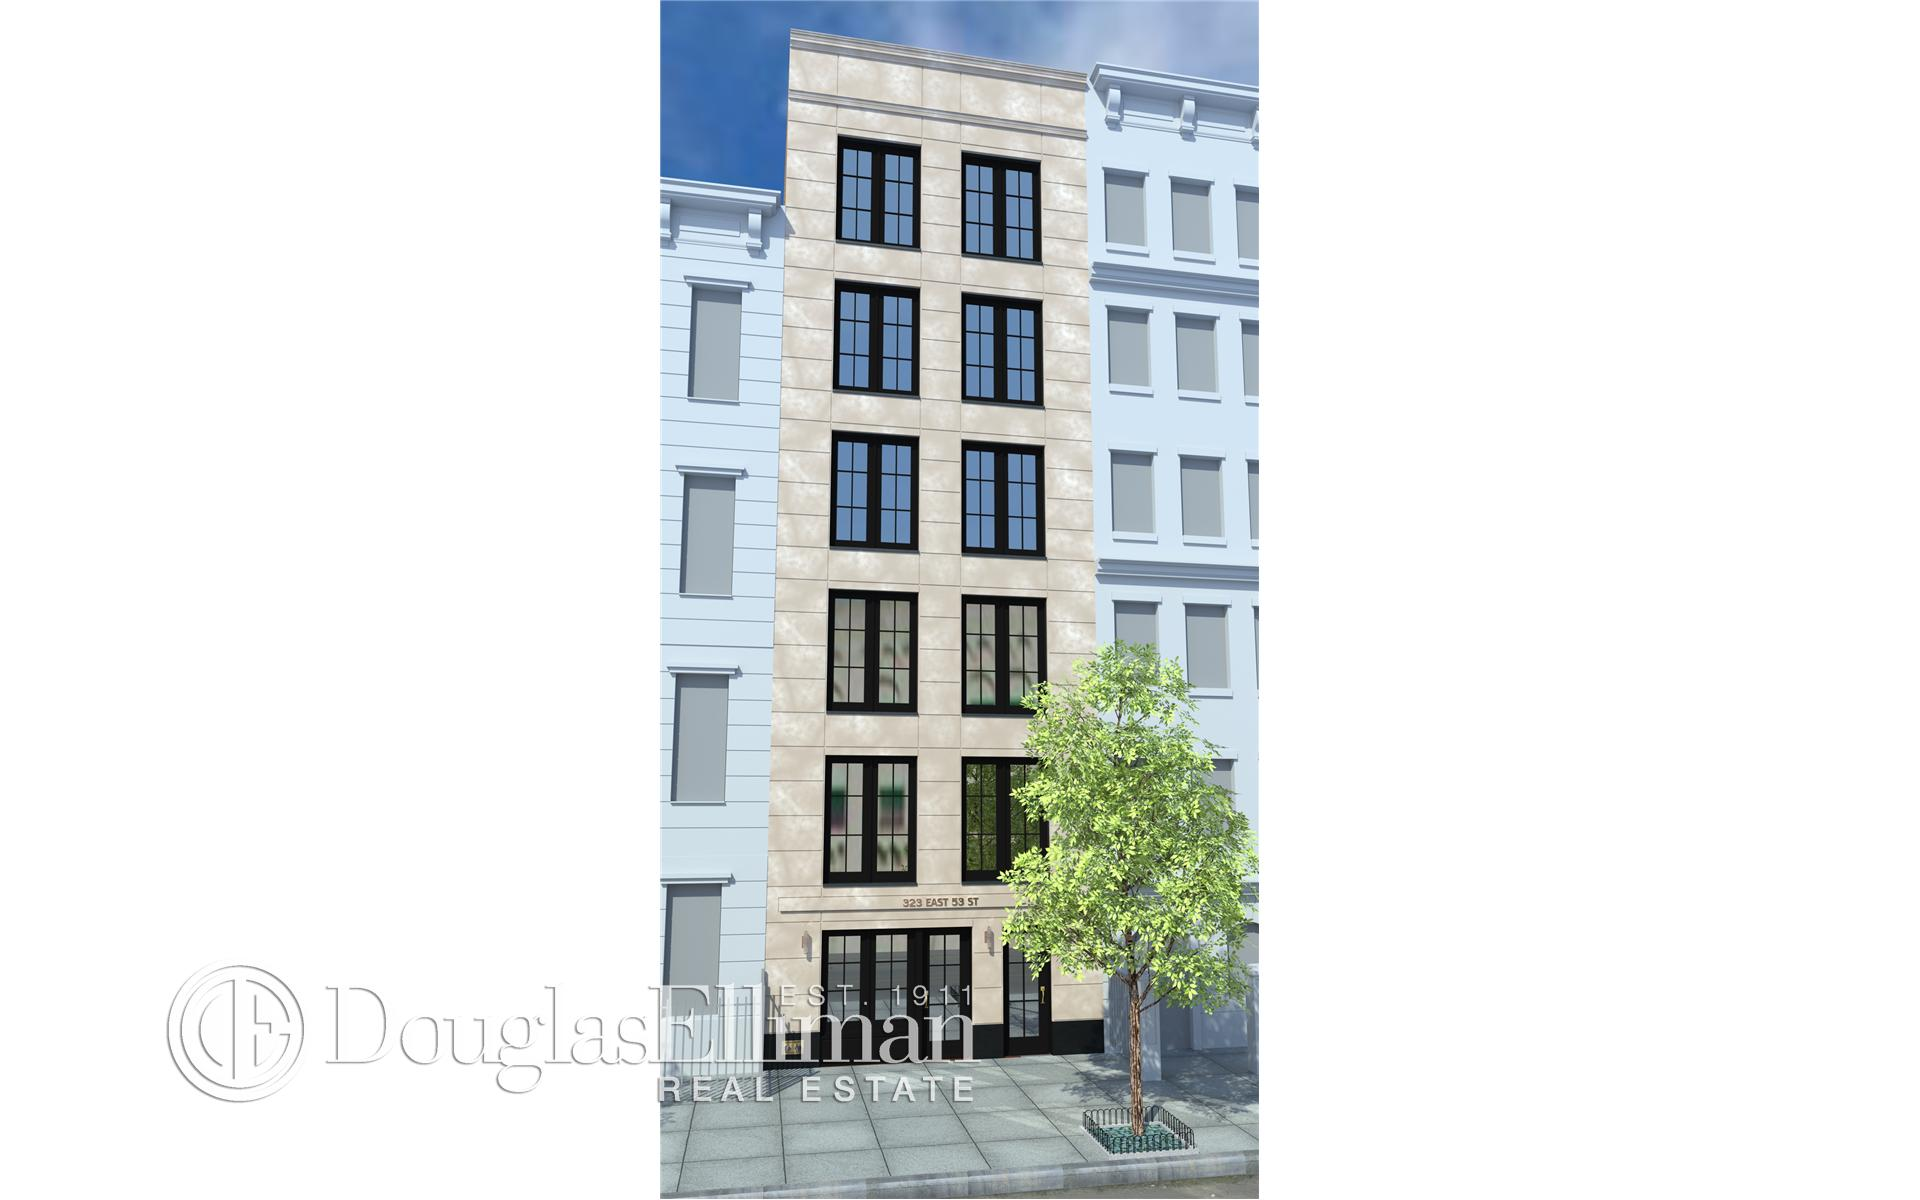 Multi Family for Sale at 323 East 53rd Street New York, New York 10022 United States